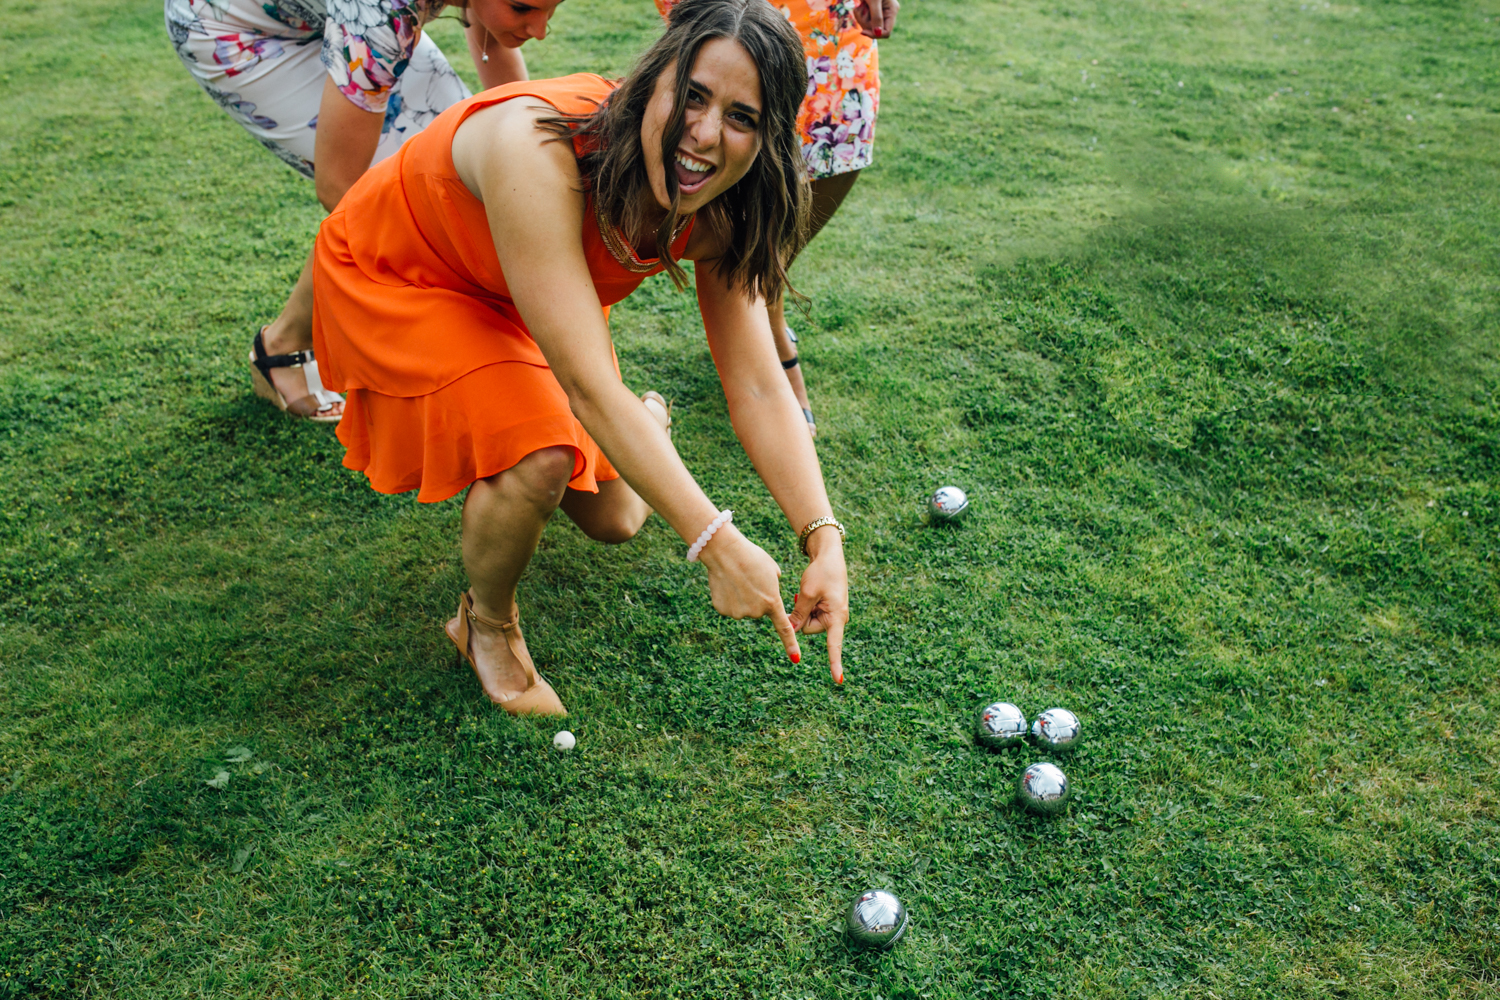 A young woman wedding guest plays lawn games in this guide on how to plan a festival wedding by Matilda Delves a Kent wedding photographer who specialises in natural wedding photography Kent